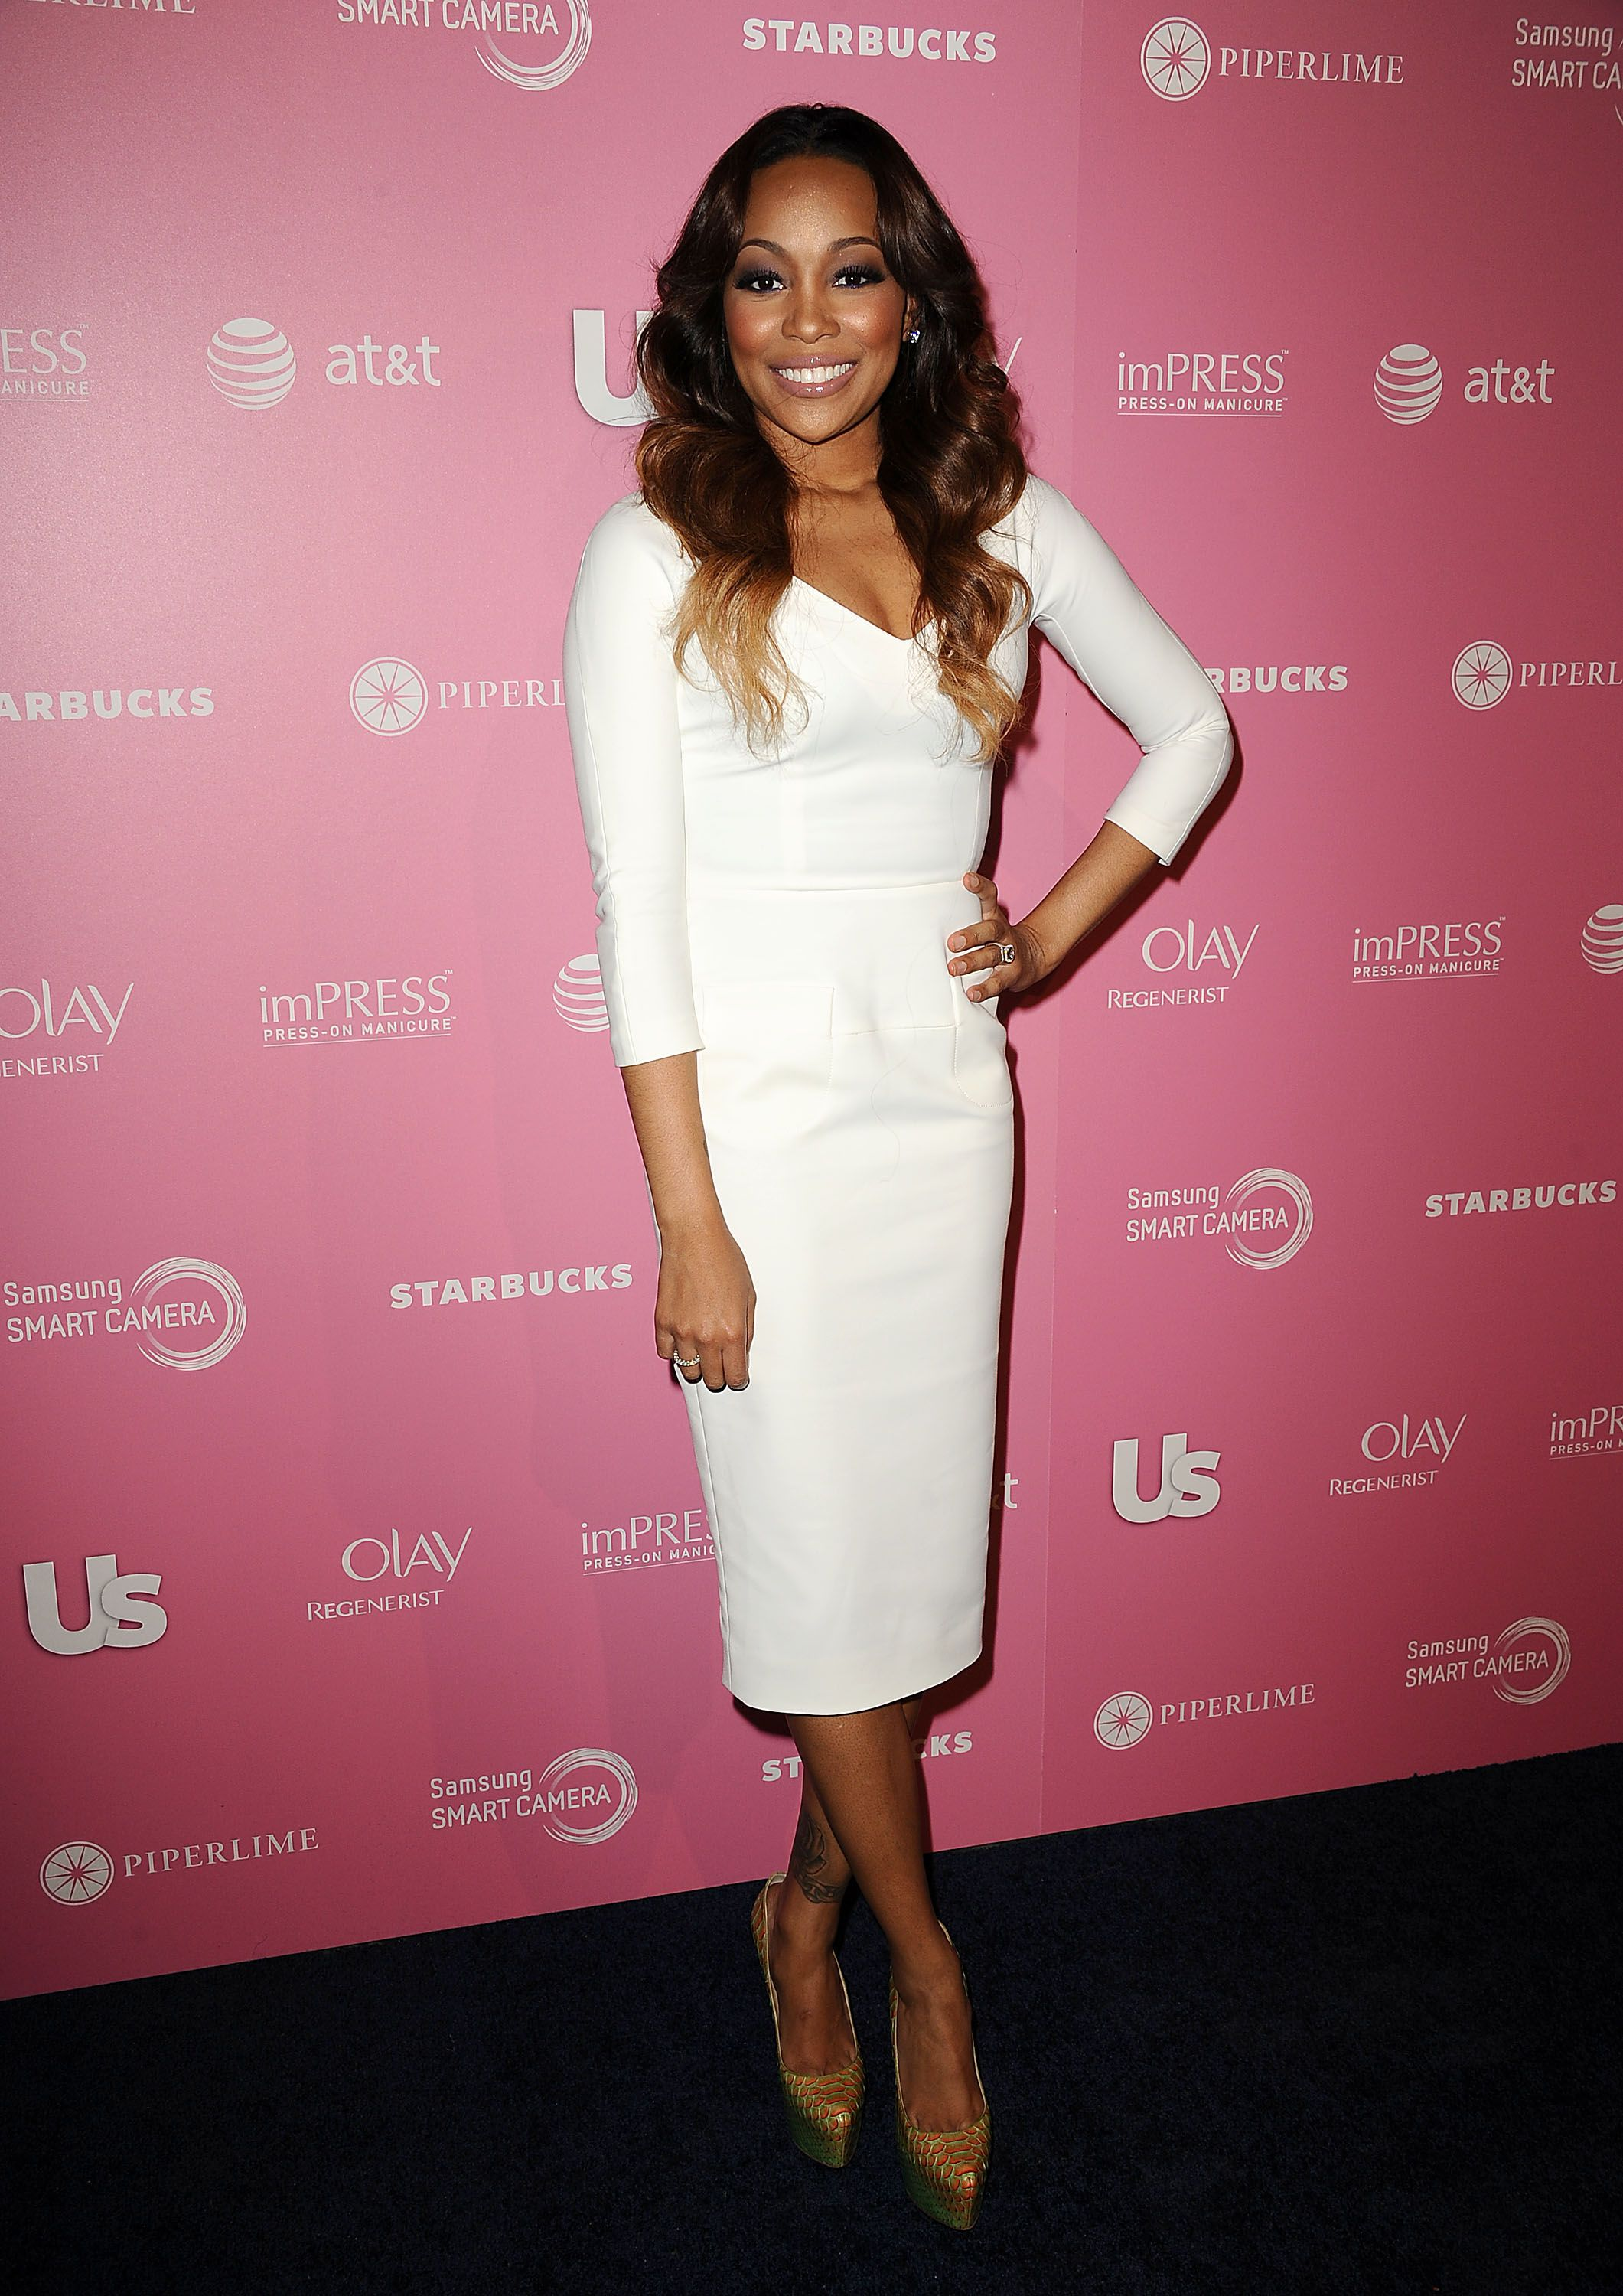 Monica Denise Brown during Us Weekly's Hot Hollywood 2012 style issue event at Greystone Manor Supperclub on April 18, 2012 in West Hollywood, California. | Source: Getty Images